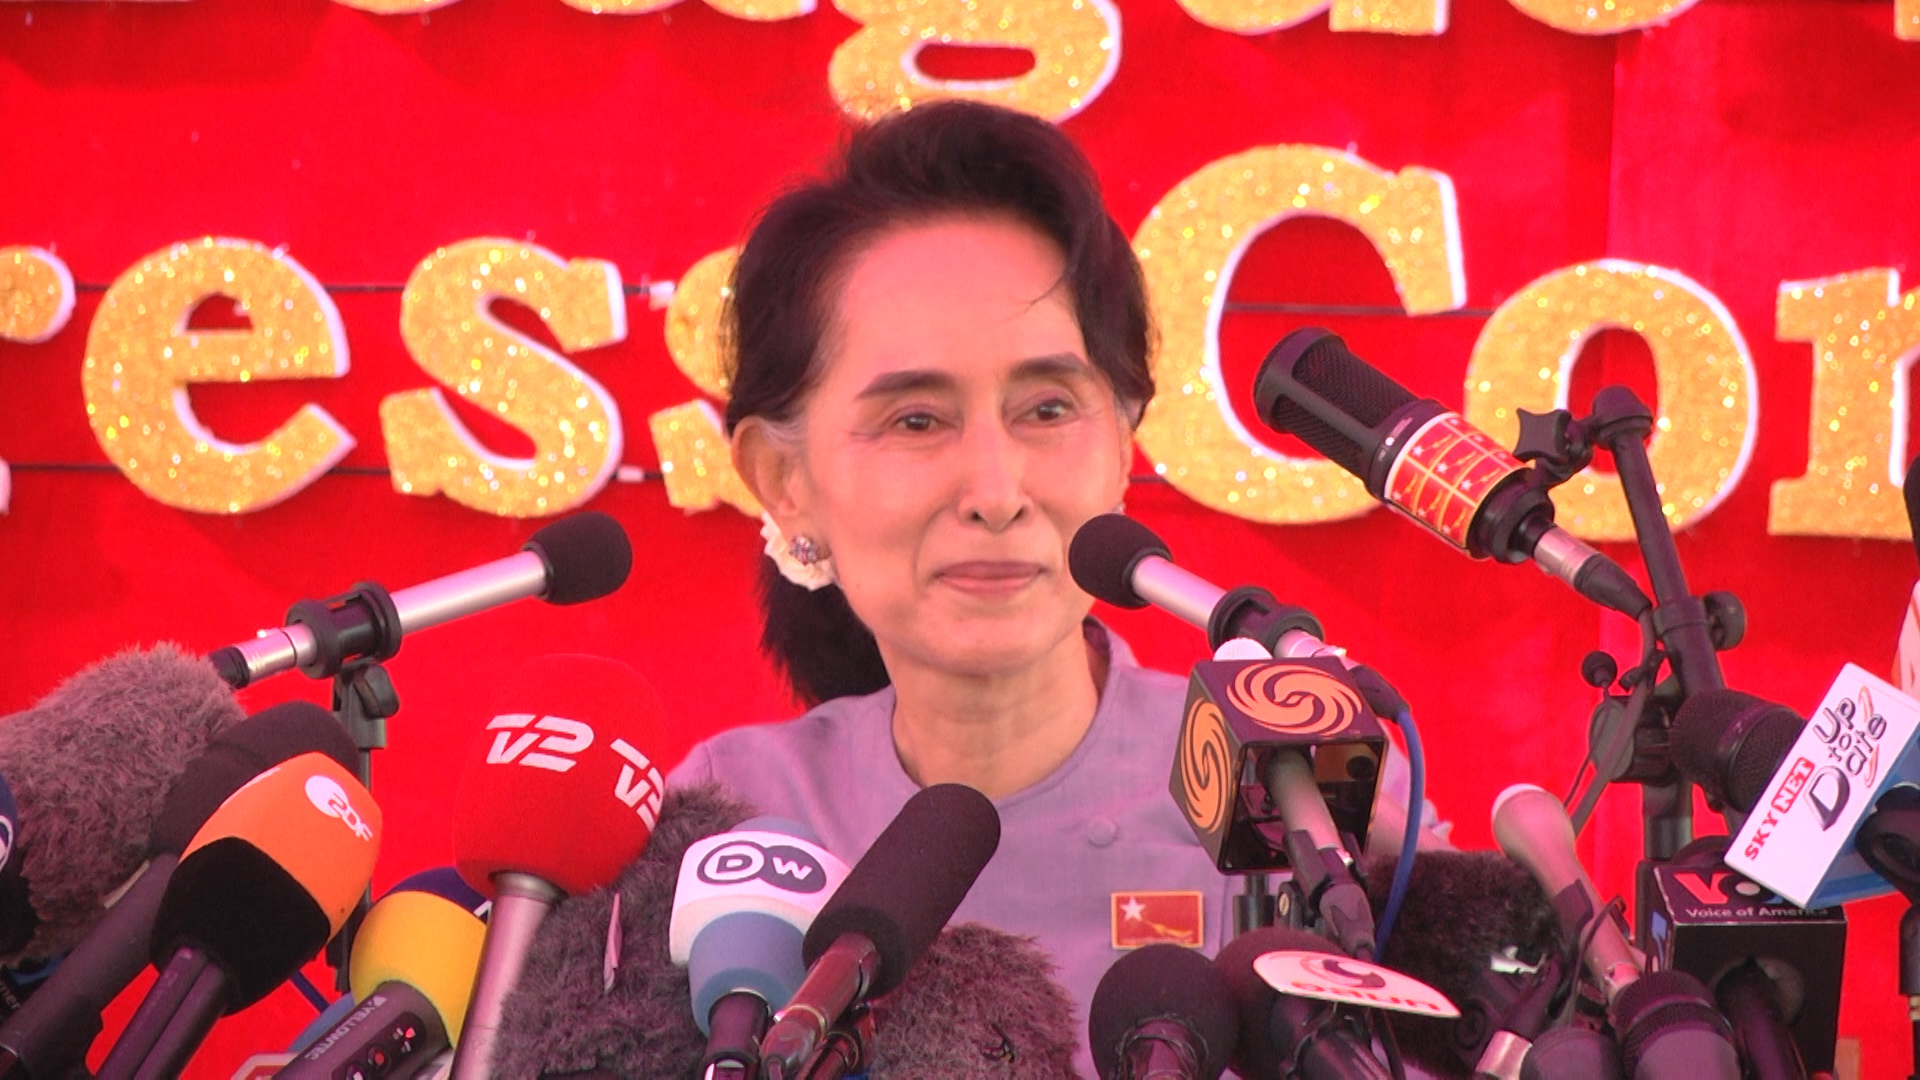 Myanmar's opposition leader Aung San Suu Kyi speaks at a press conference at her home in Yangon, Myanmar, Nov. 5, 2015. (Photo: Z. Aung/VOA )